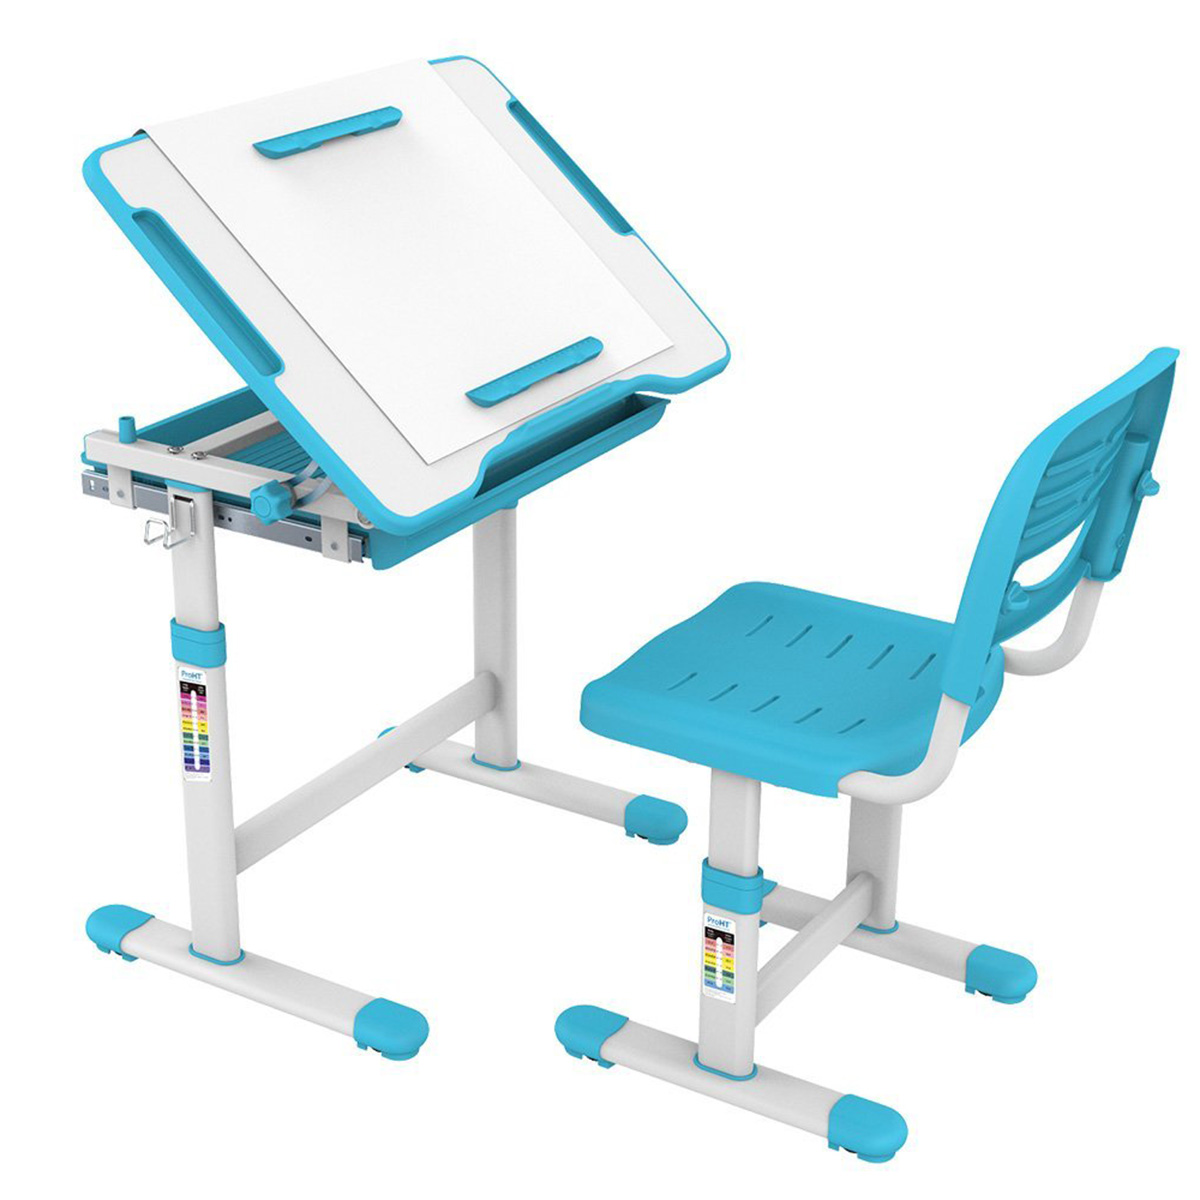 KidzDesk KD26B Ergonomic Height Adjustable Children Desk and Chair Set (Blue)